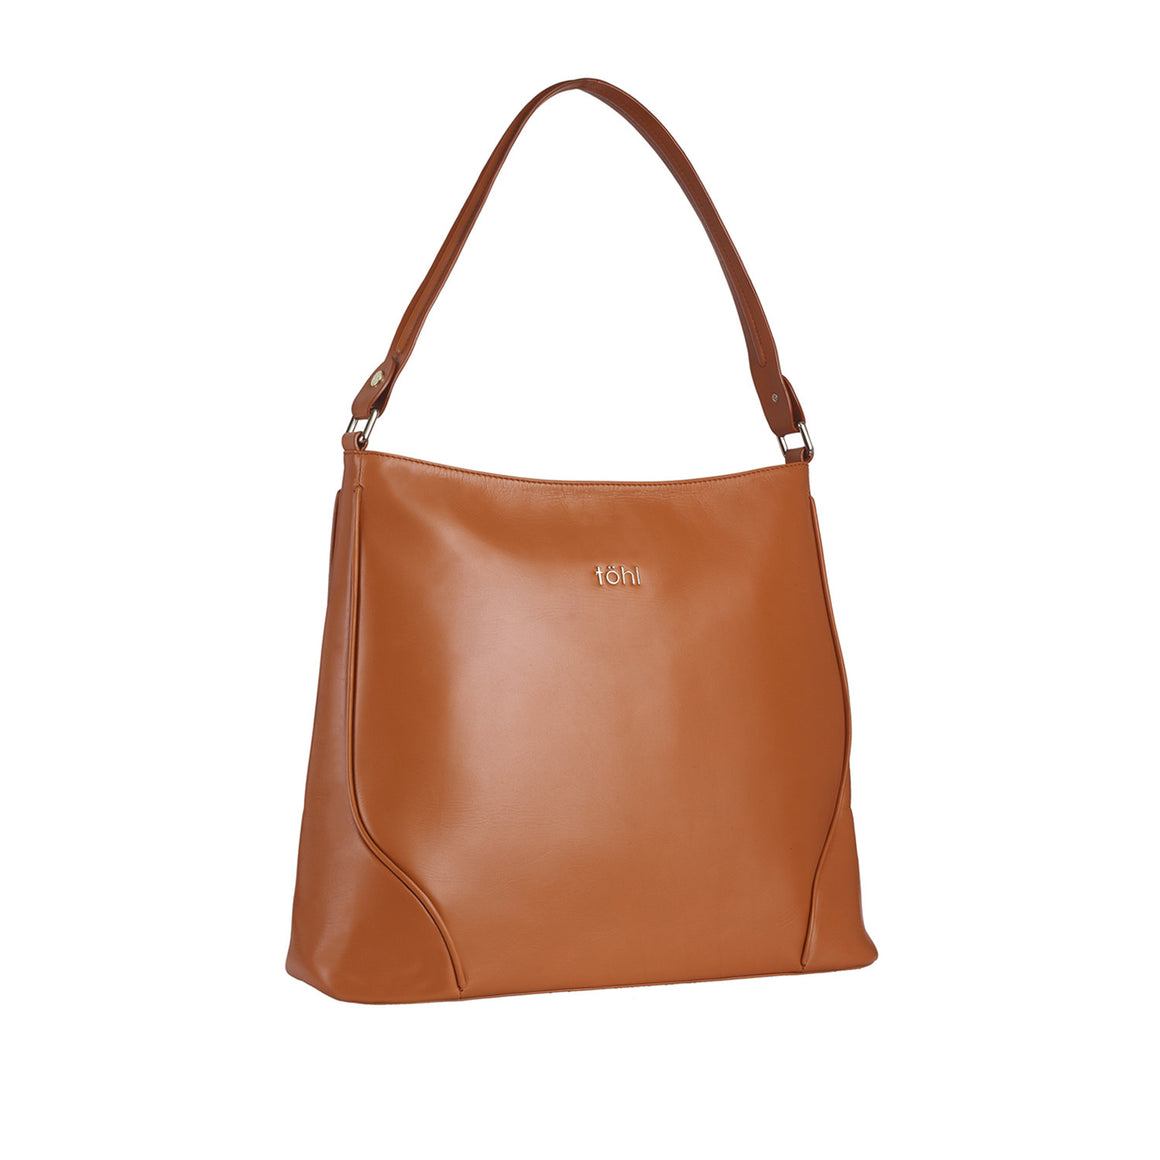 SB 0010 - TOHL ALEXA WOMEN'S SHOULDER BAG - COGNAC